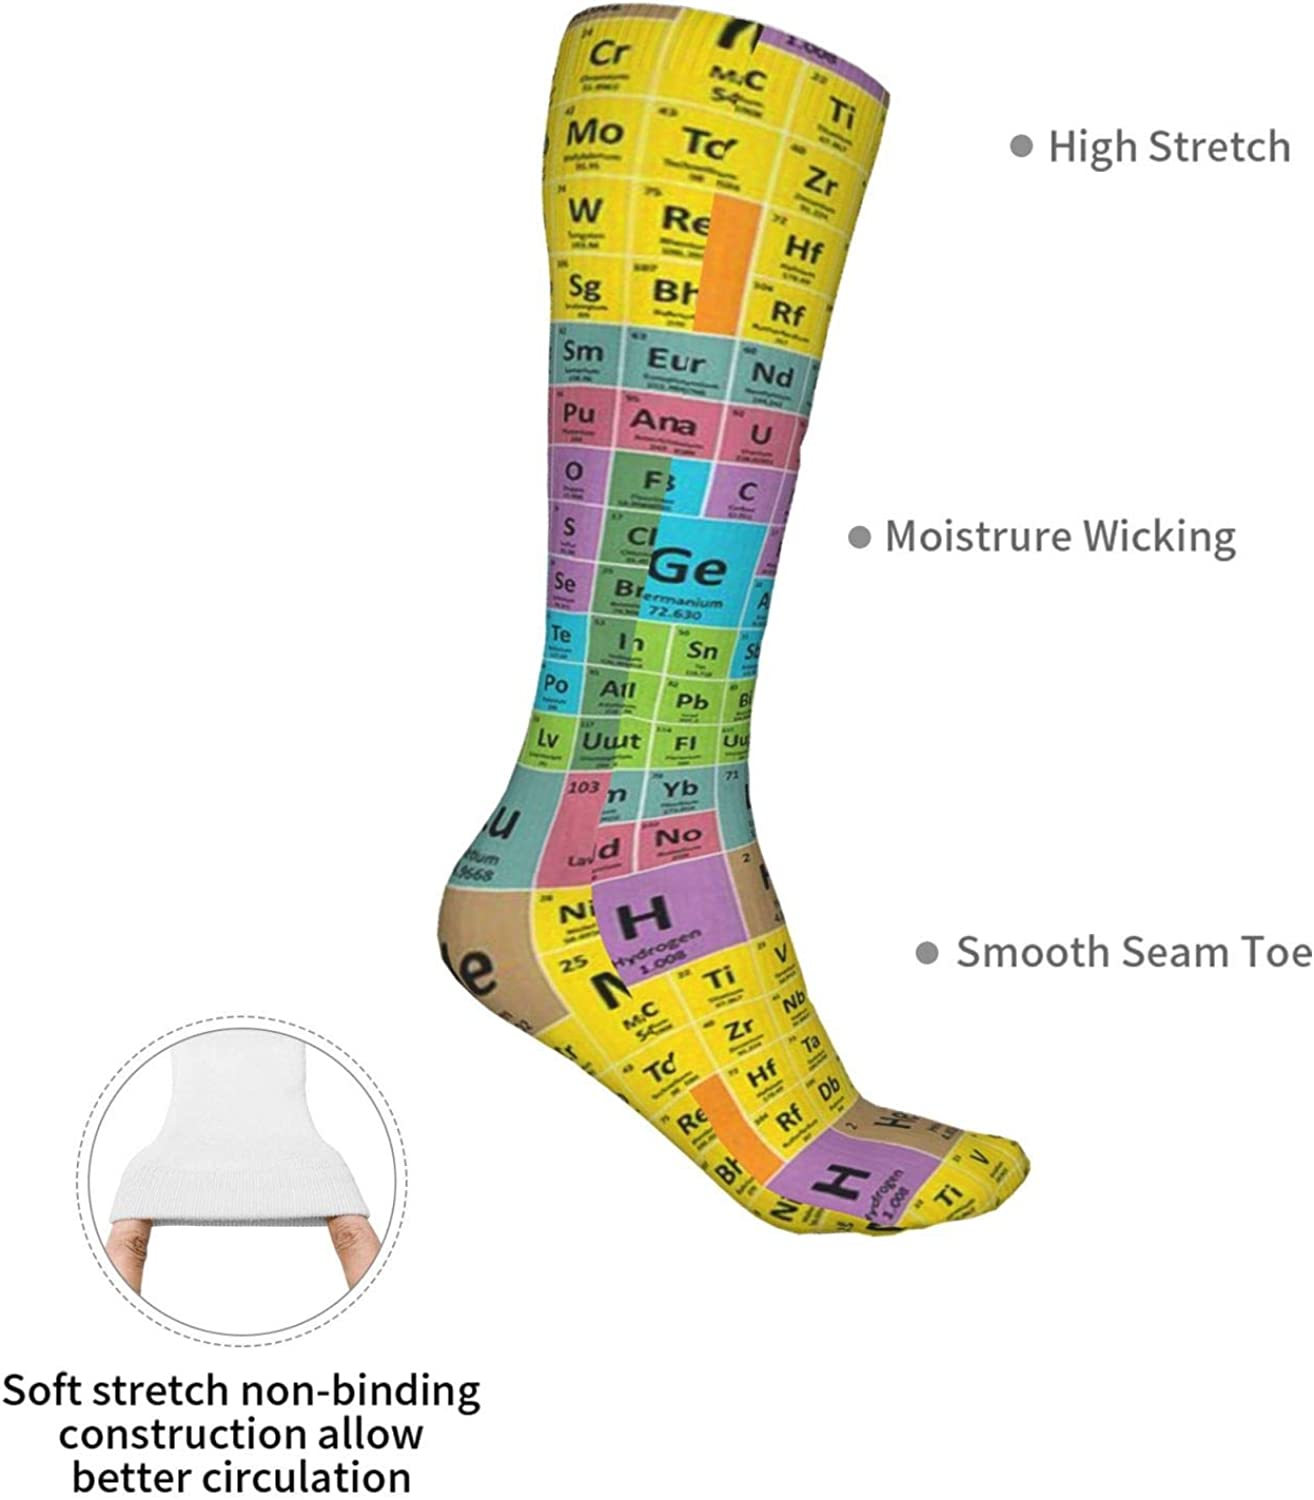 Periodic Table Of Elements Women Premium High Socks, Stocking High Leg Warmer Sockings Crew Sock For Daily And Work